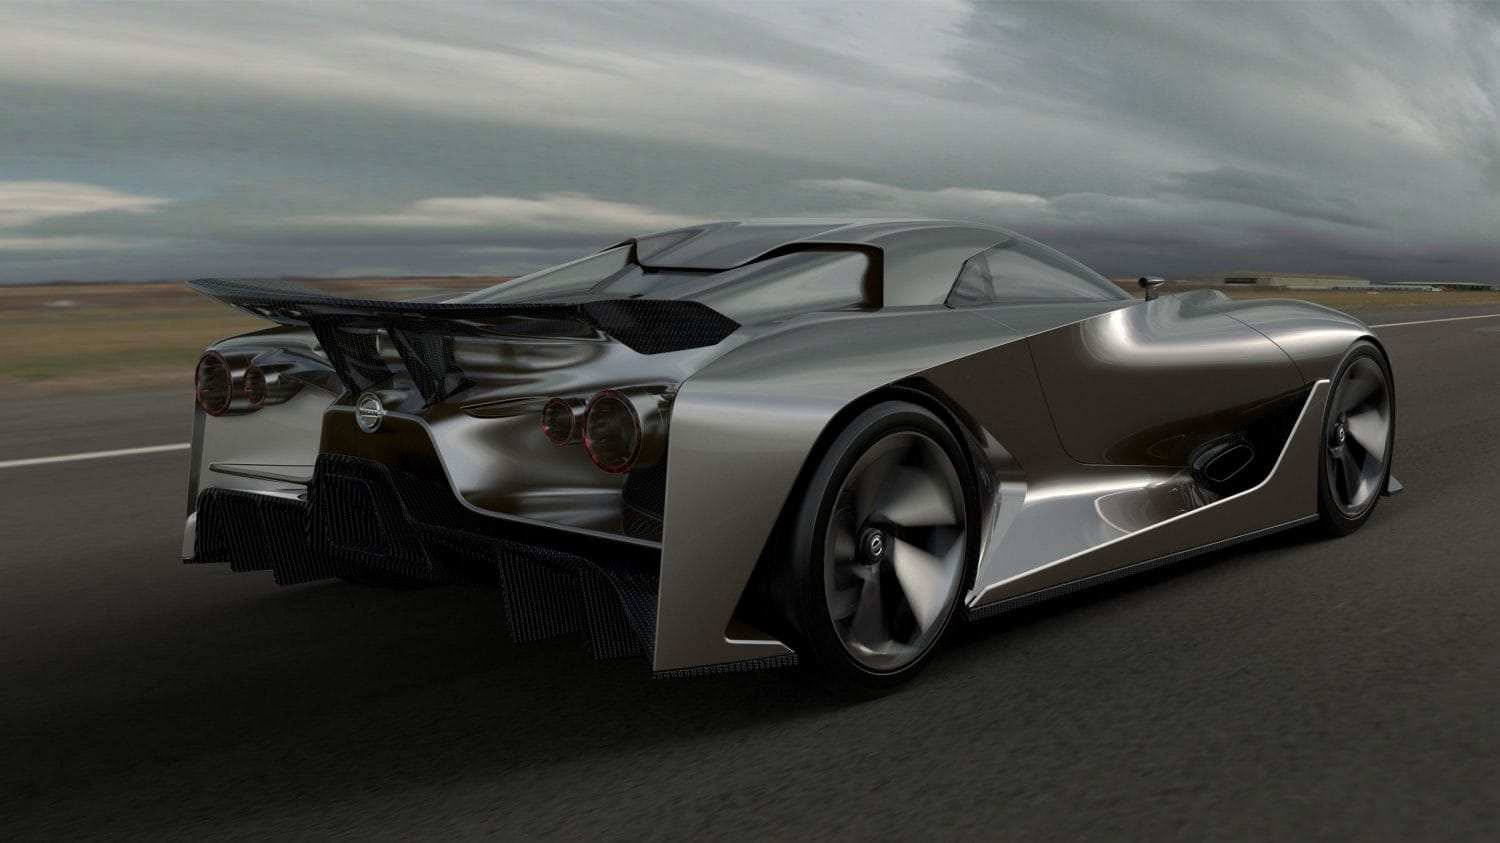 91 Concept of Nissan 2020 Gran Turismo Specs with Nissan 2020 Gran Turismo